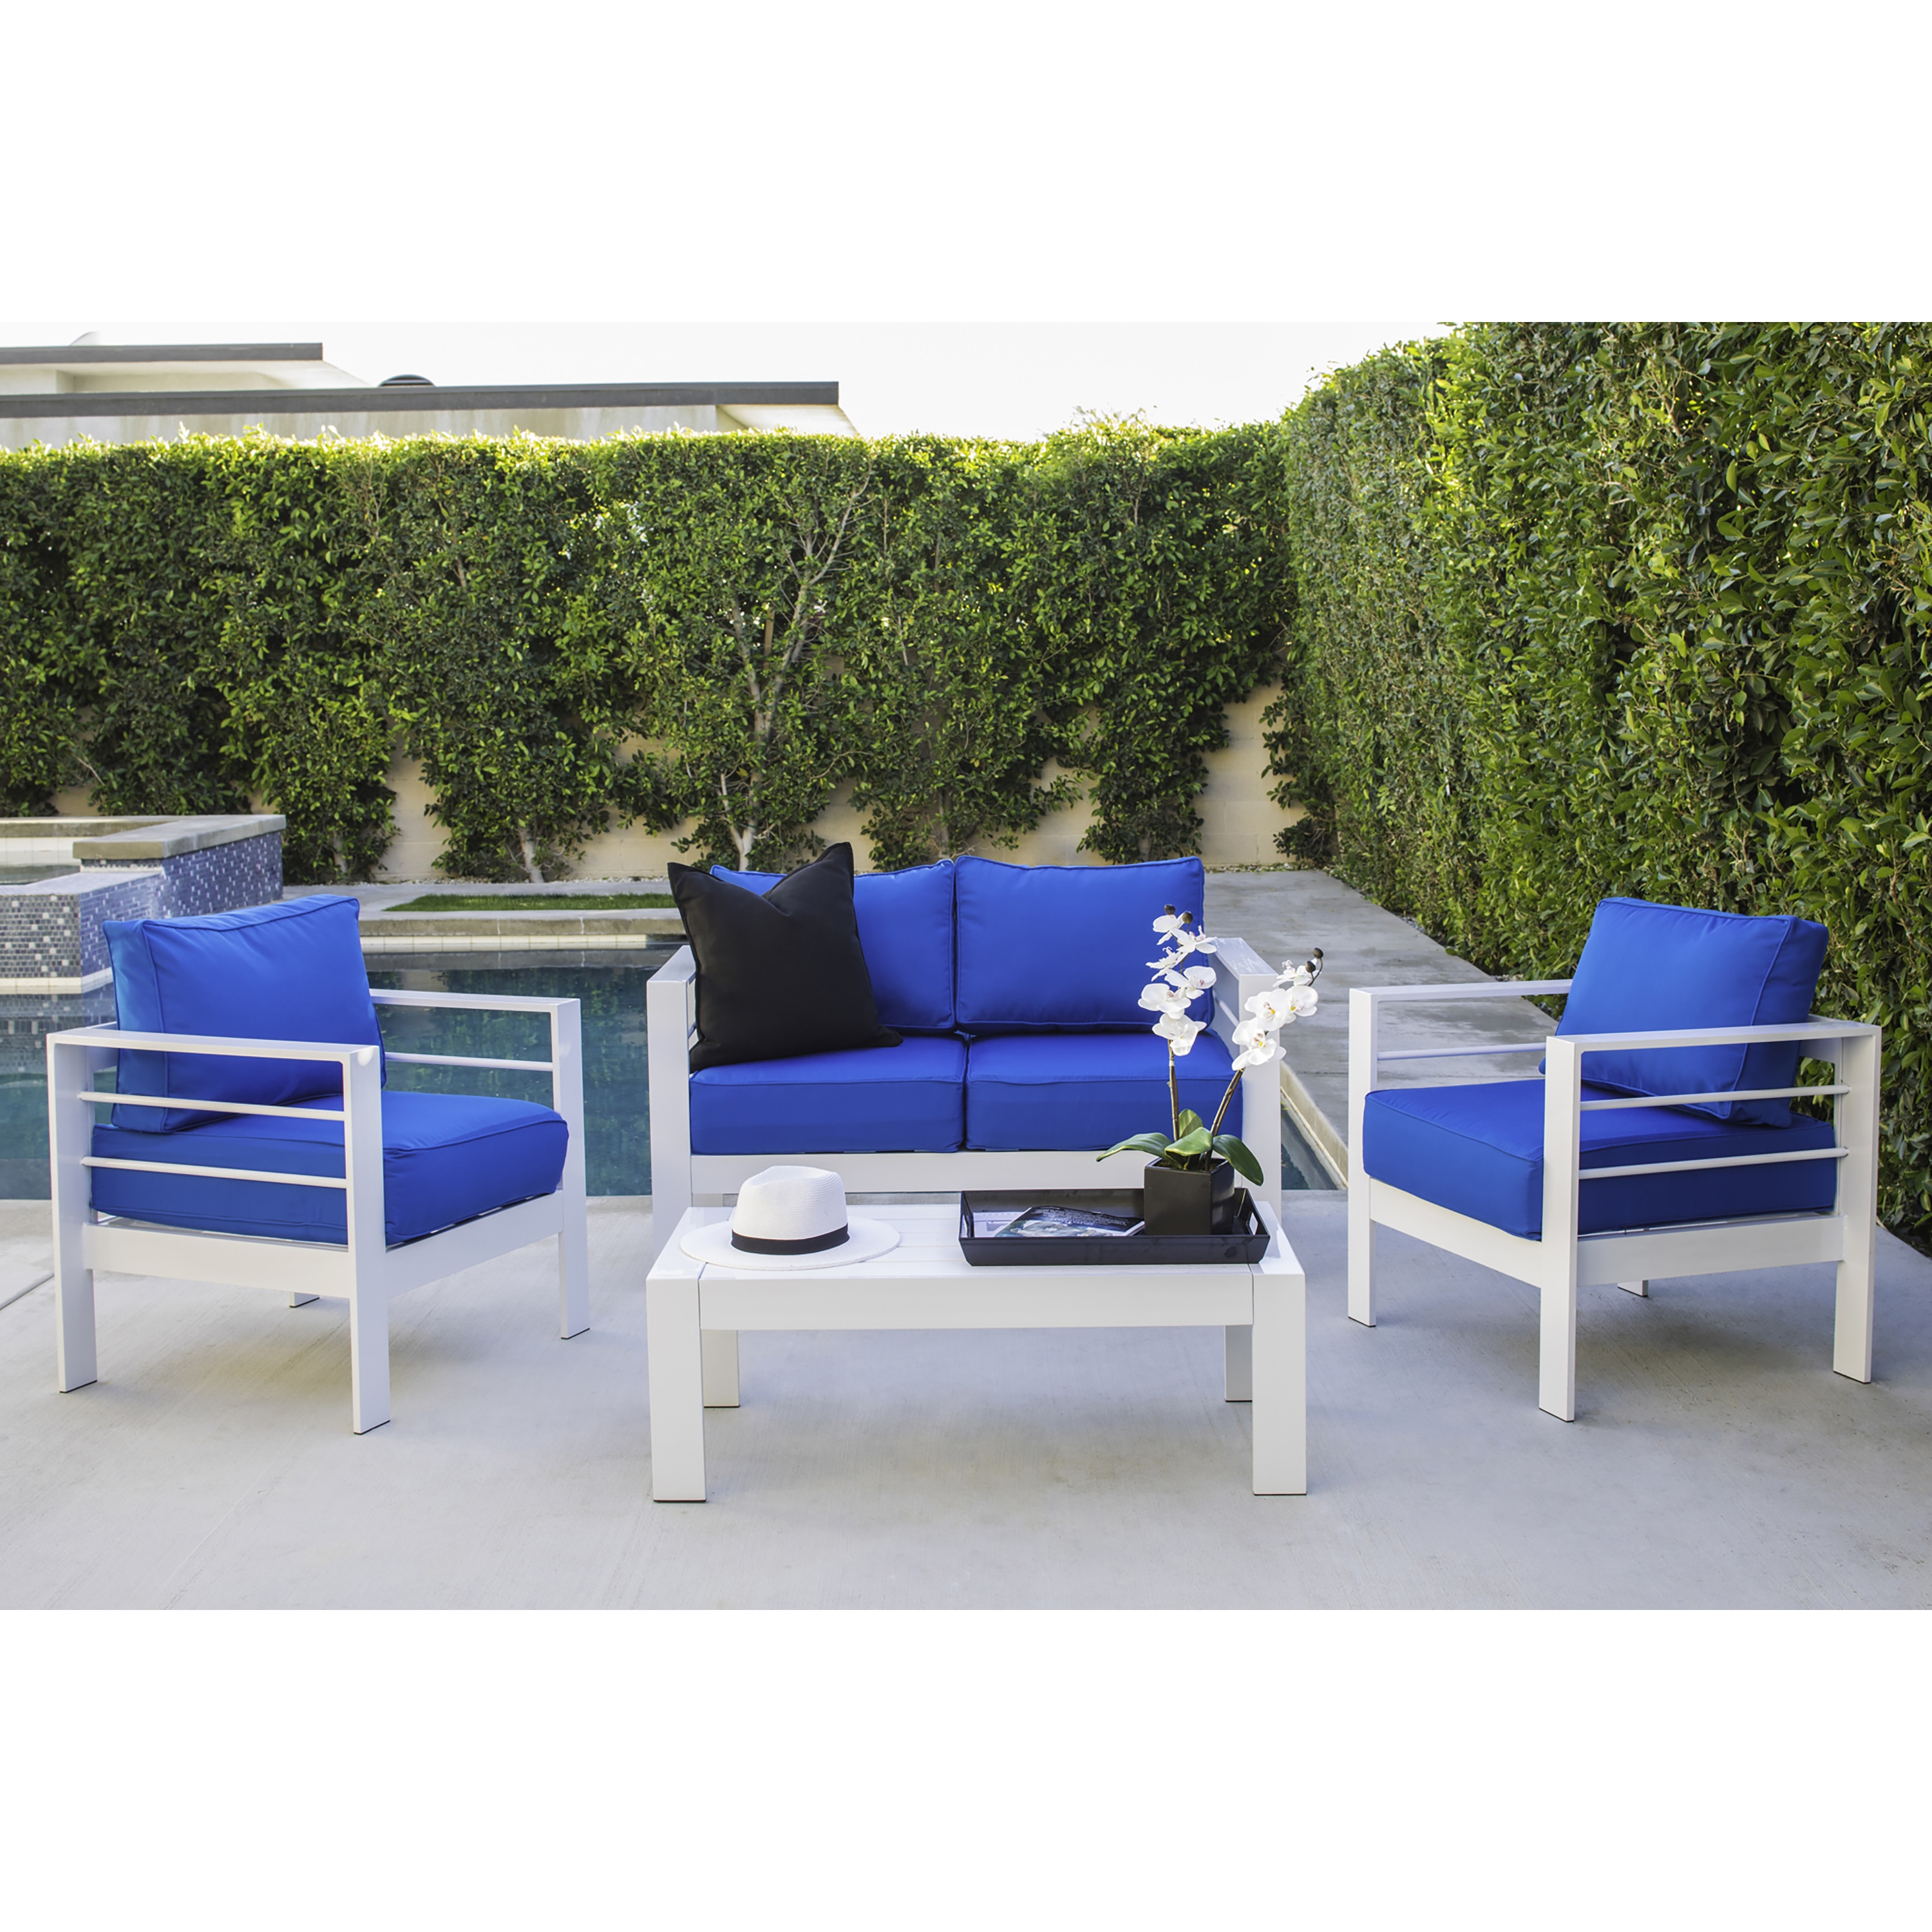 Handy Living Crete 4 Piece Indoor/Outdoor Gloss White Conversation Set with Sunbrella Pacific Bue Cushions